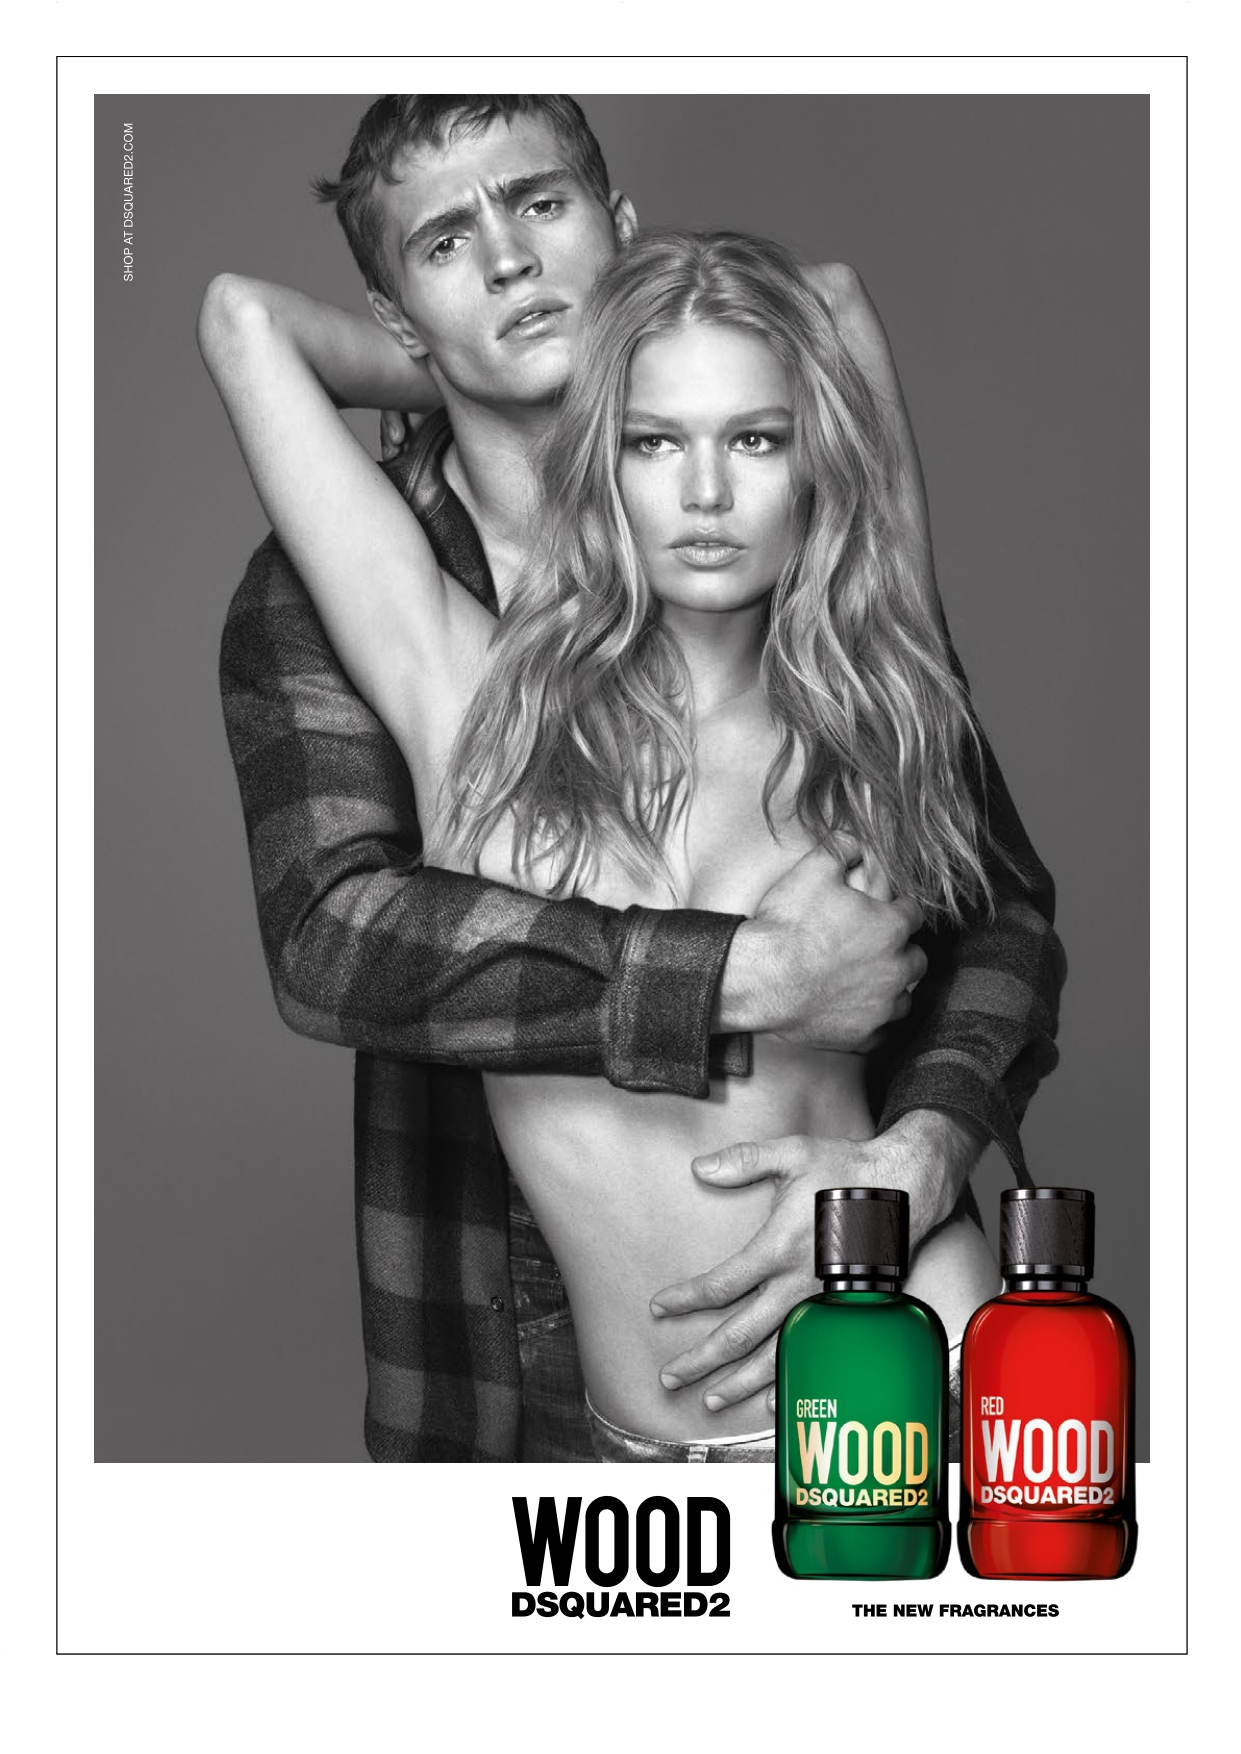 Green Wood e Red Wood profumi Dsquared2